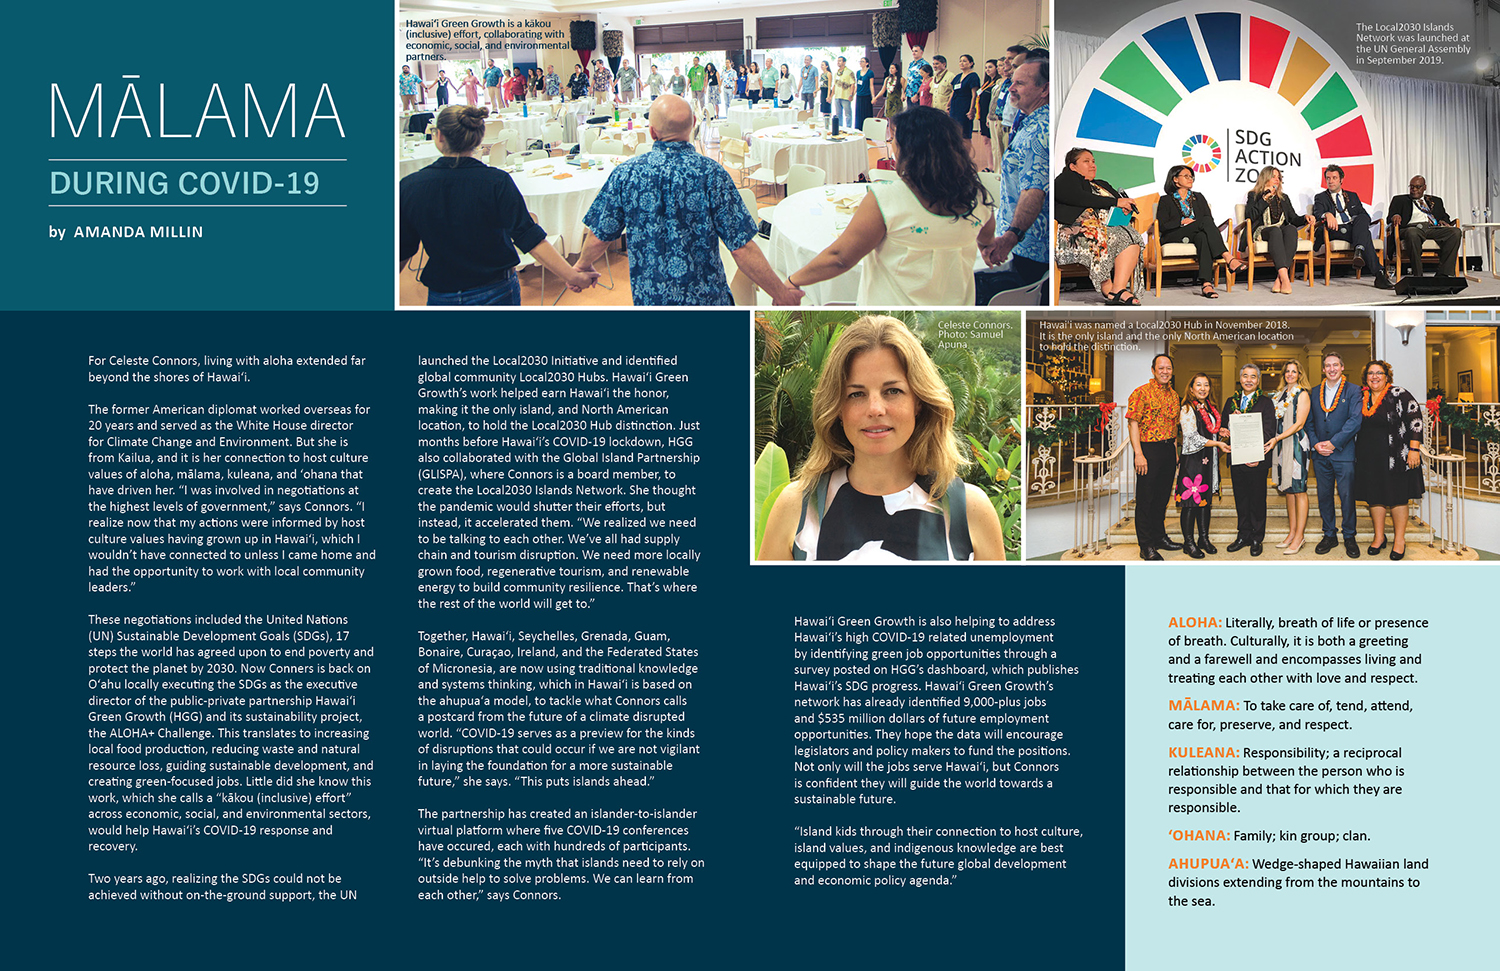 Spread for Ka Pili Kai aricle Mālama during COVID-19. Collage of photos and text highlighting the career ofCeleste Connors.